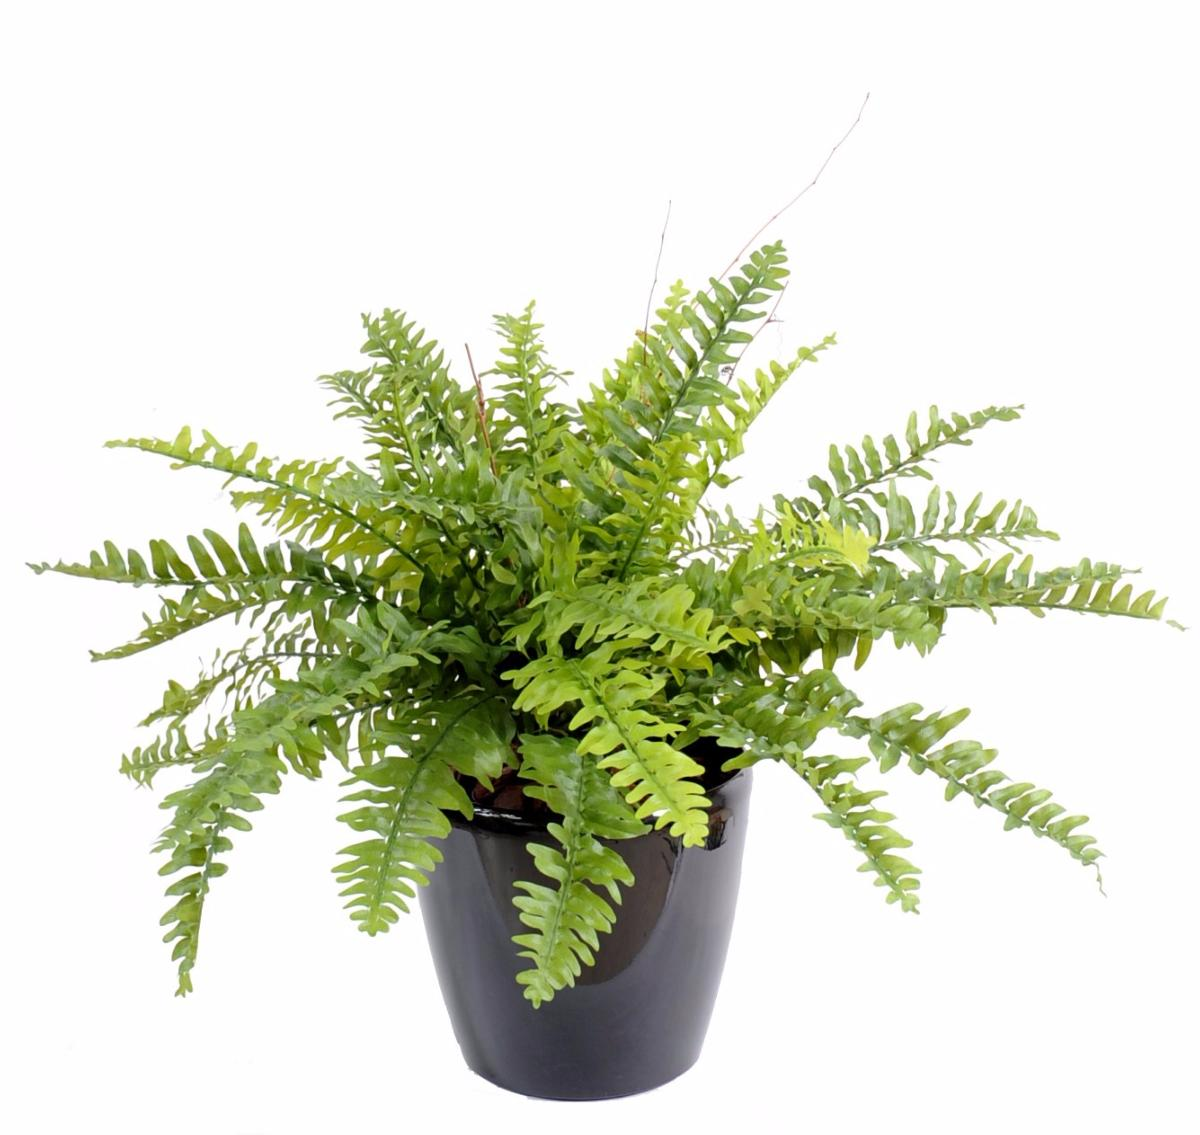 plante artificielle foug 232 re boston en pot int 233 rieur h 50cm vert